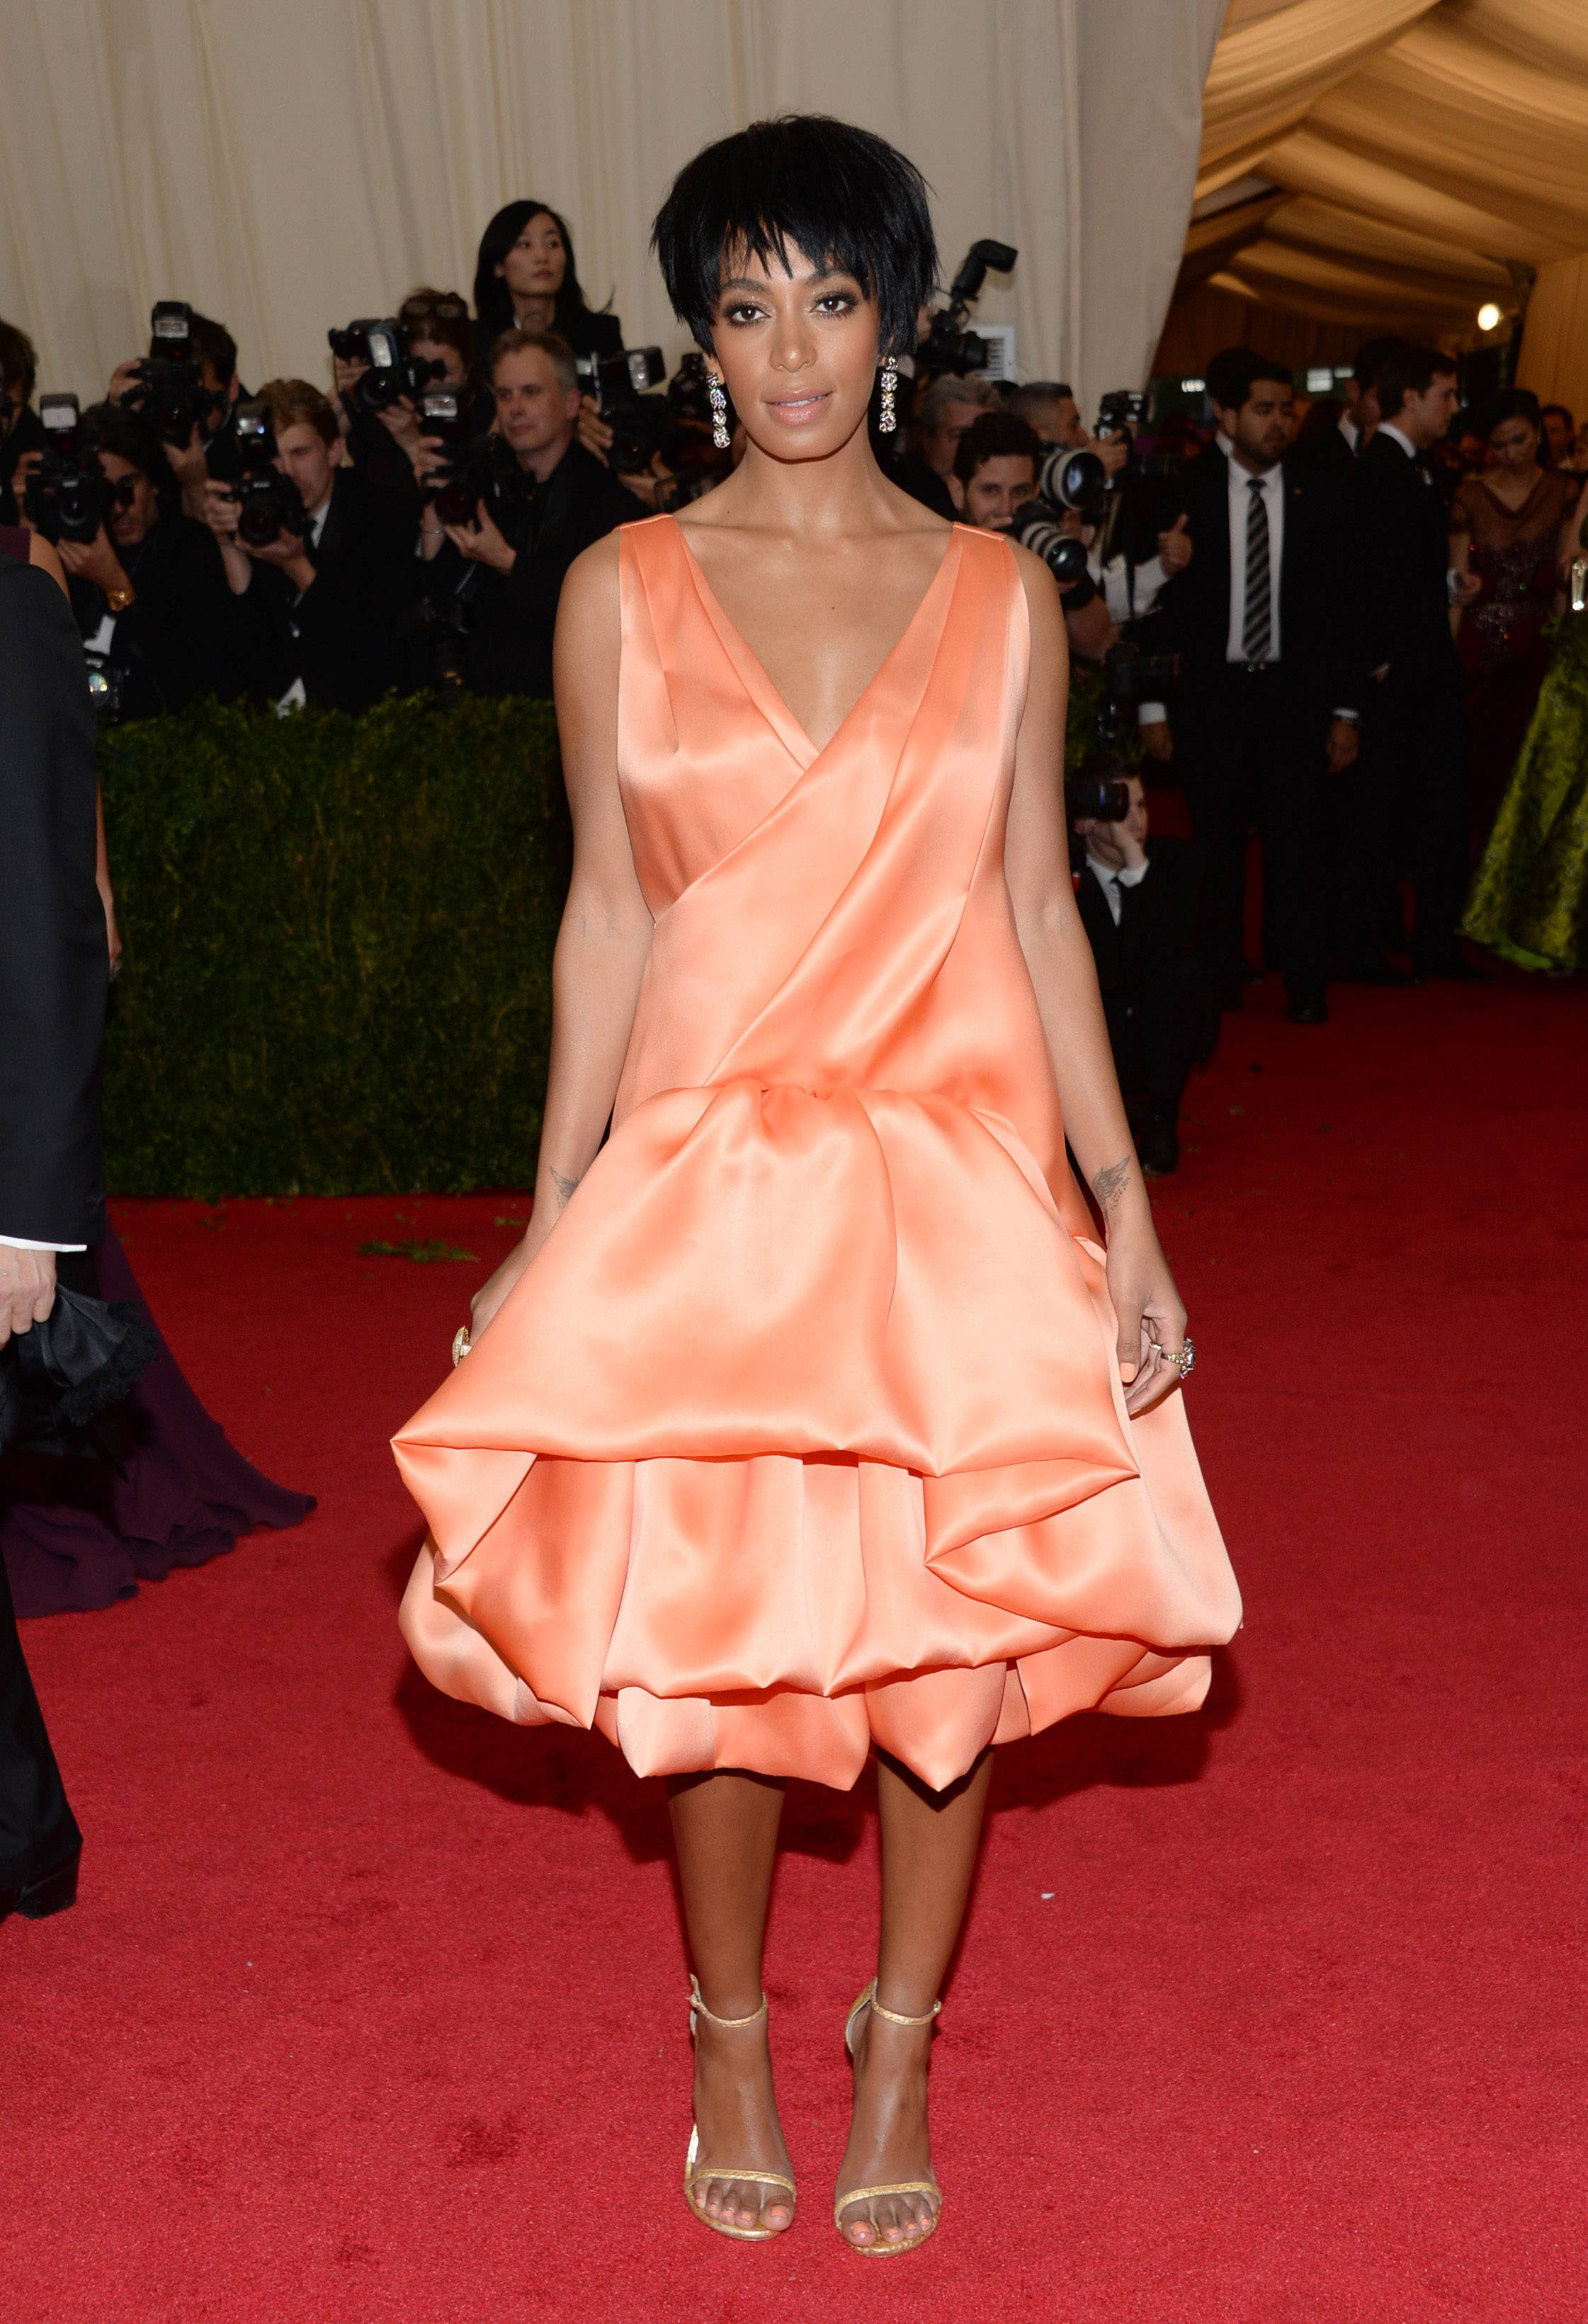 Looking cool in this photo from The Metropolitan Museum of Art's Costume Institute benefit gala in New York, Solange Knowles got more publicity from the elevator-surveillance video showing her slapping and kicking at her brother-in-law Jay Z.